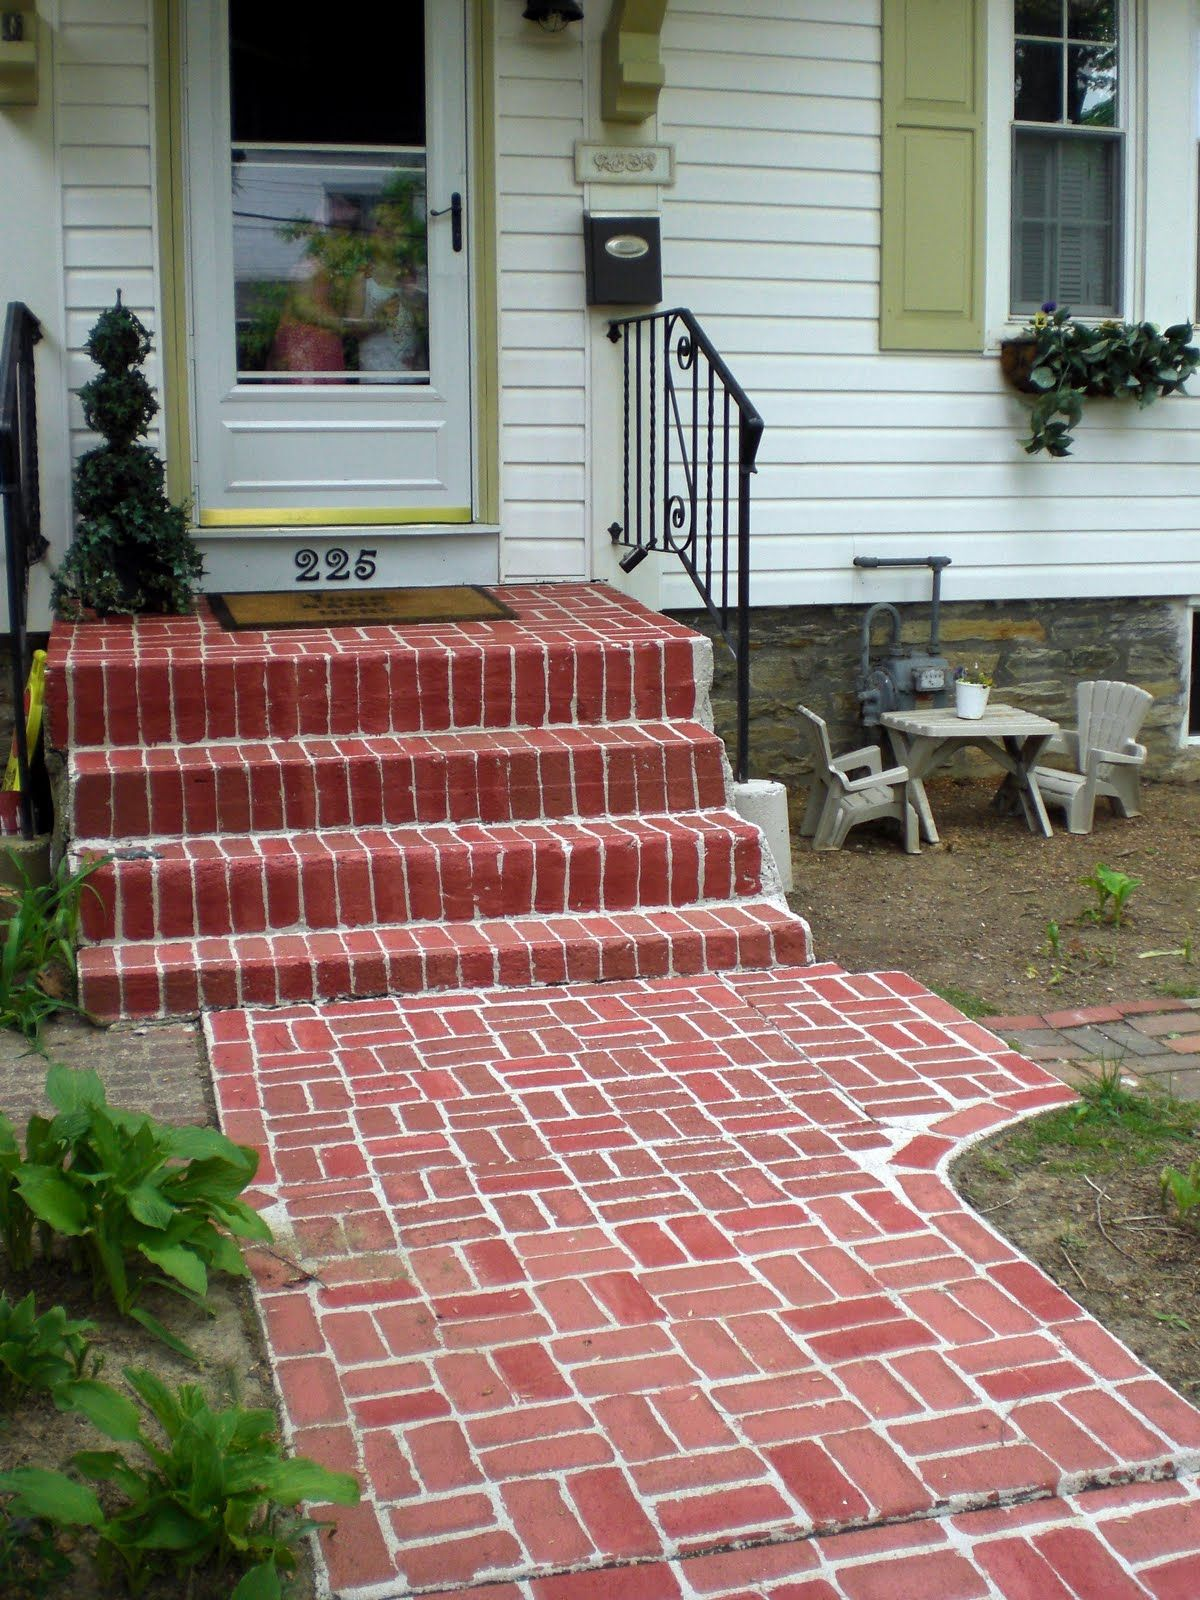 A Few Years Ago We Lived In A Teeny Tiny House In Glenside Pa It Was Adorable But We Needed Some More Room So In T Brick Sidewalk Faux Brick Brick